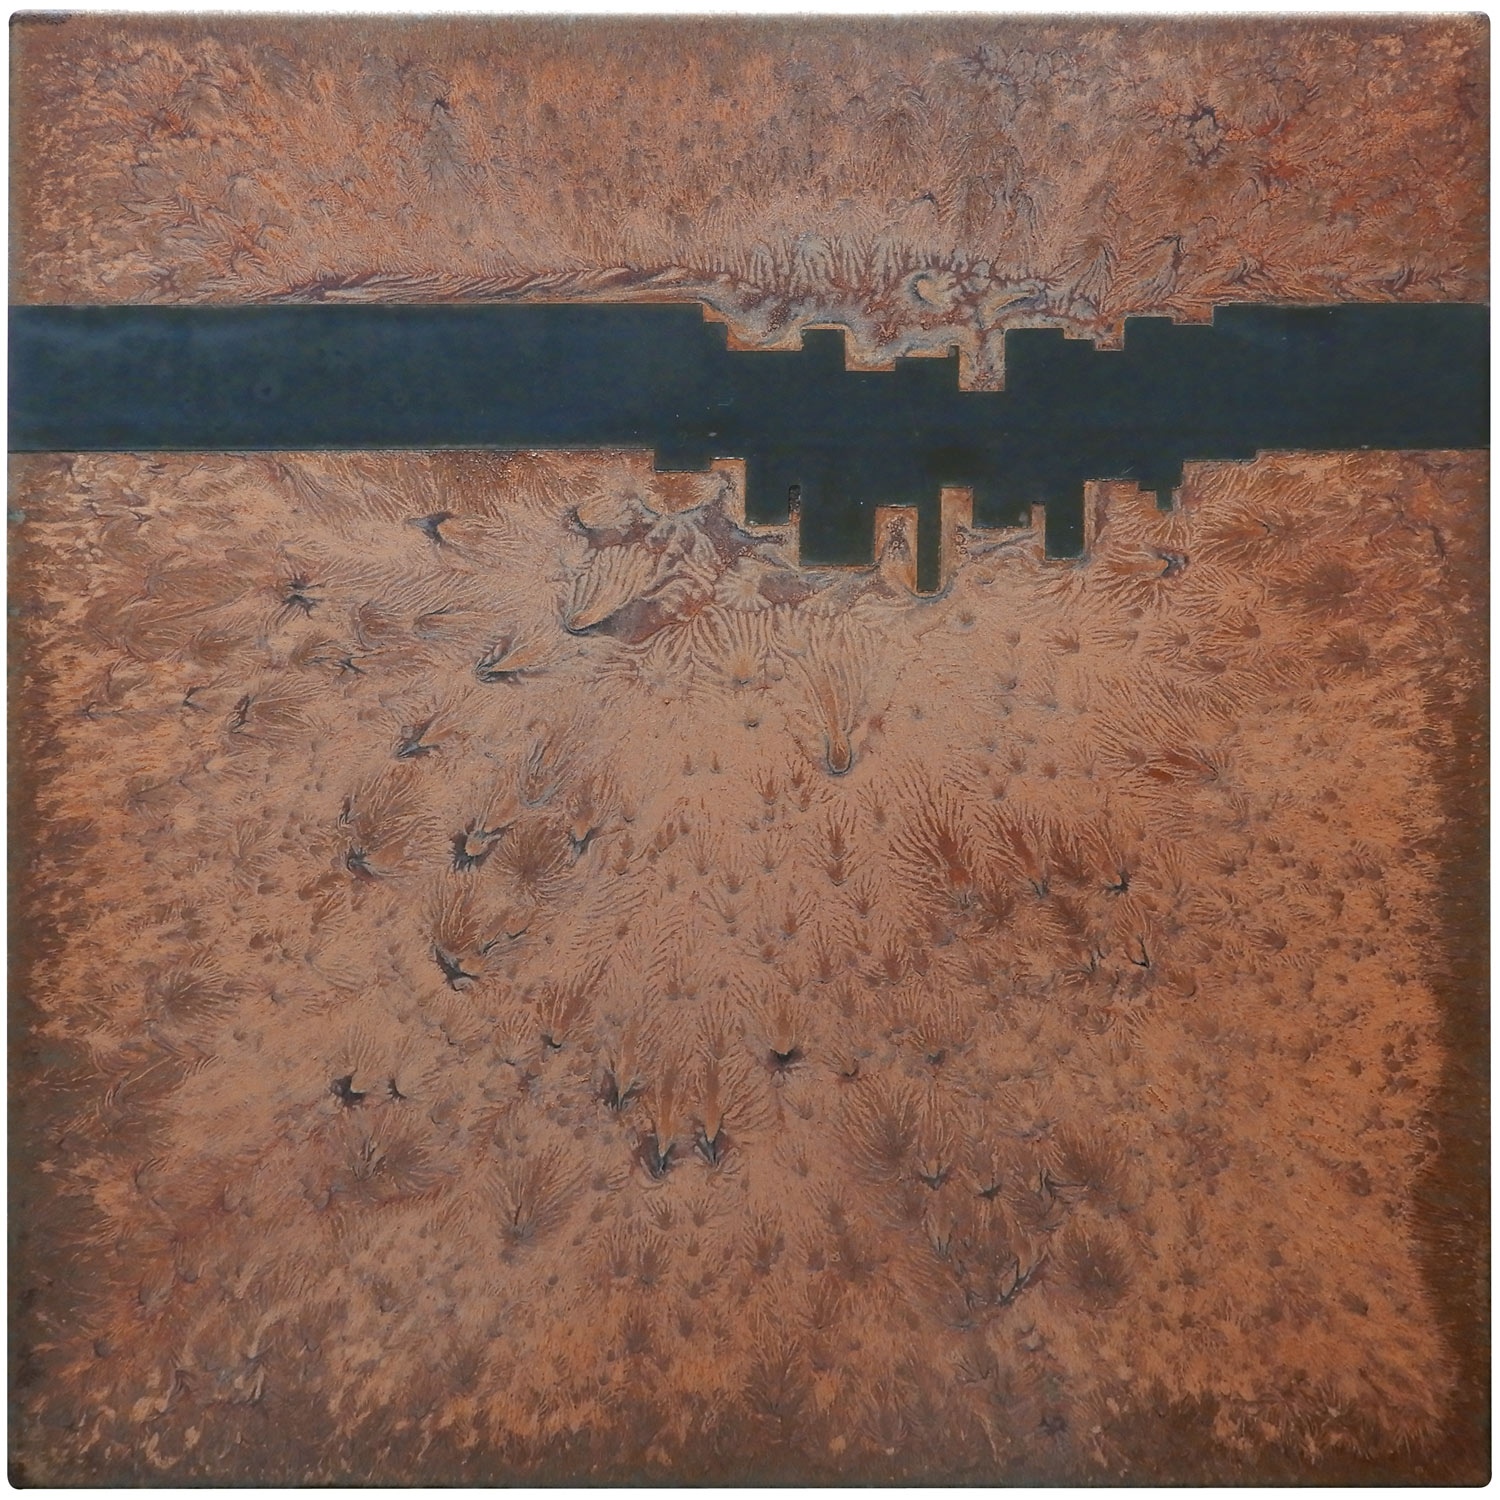 Rust Painting St 64